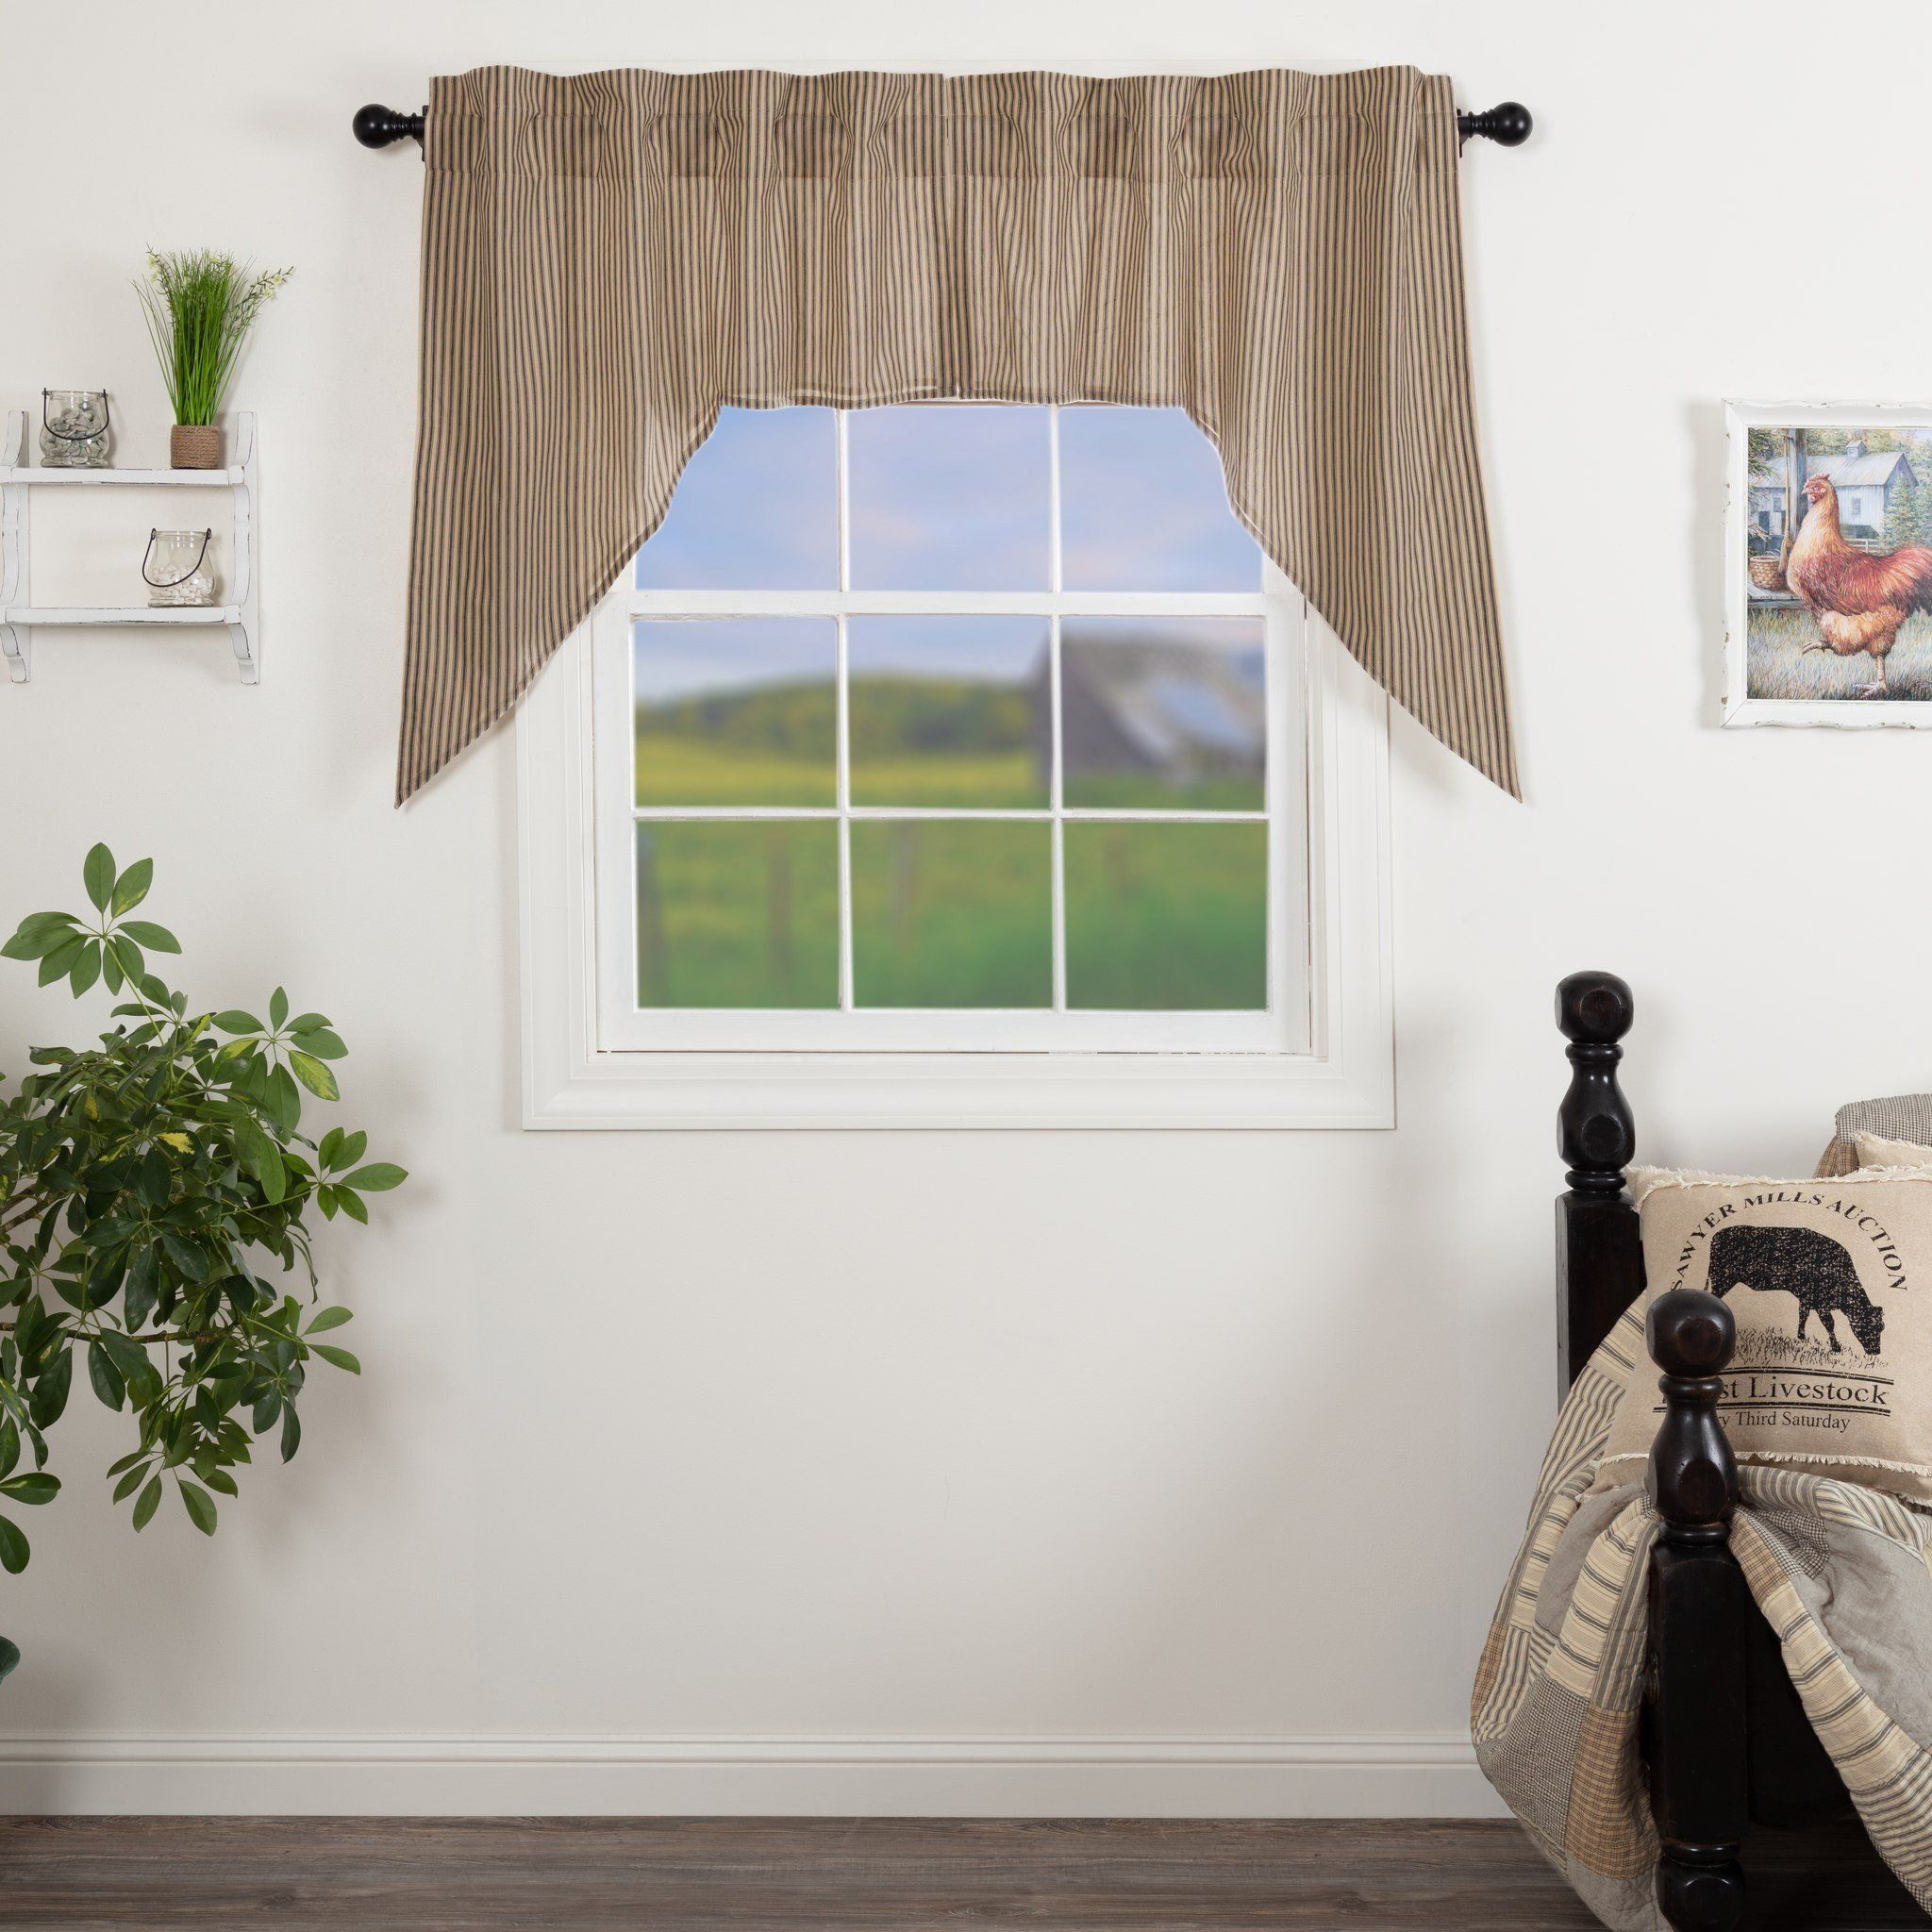 Black Check Scalloped Window Swag Set of 2 by VHC Brands Lined